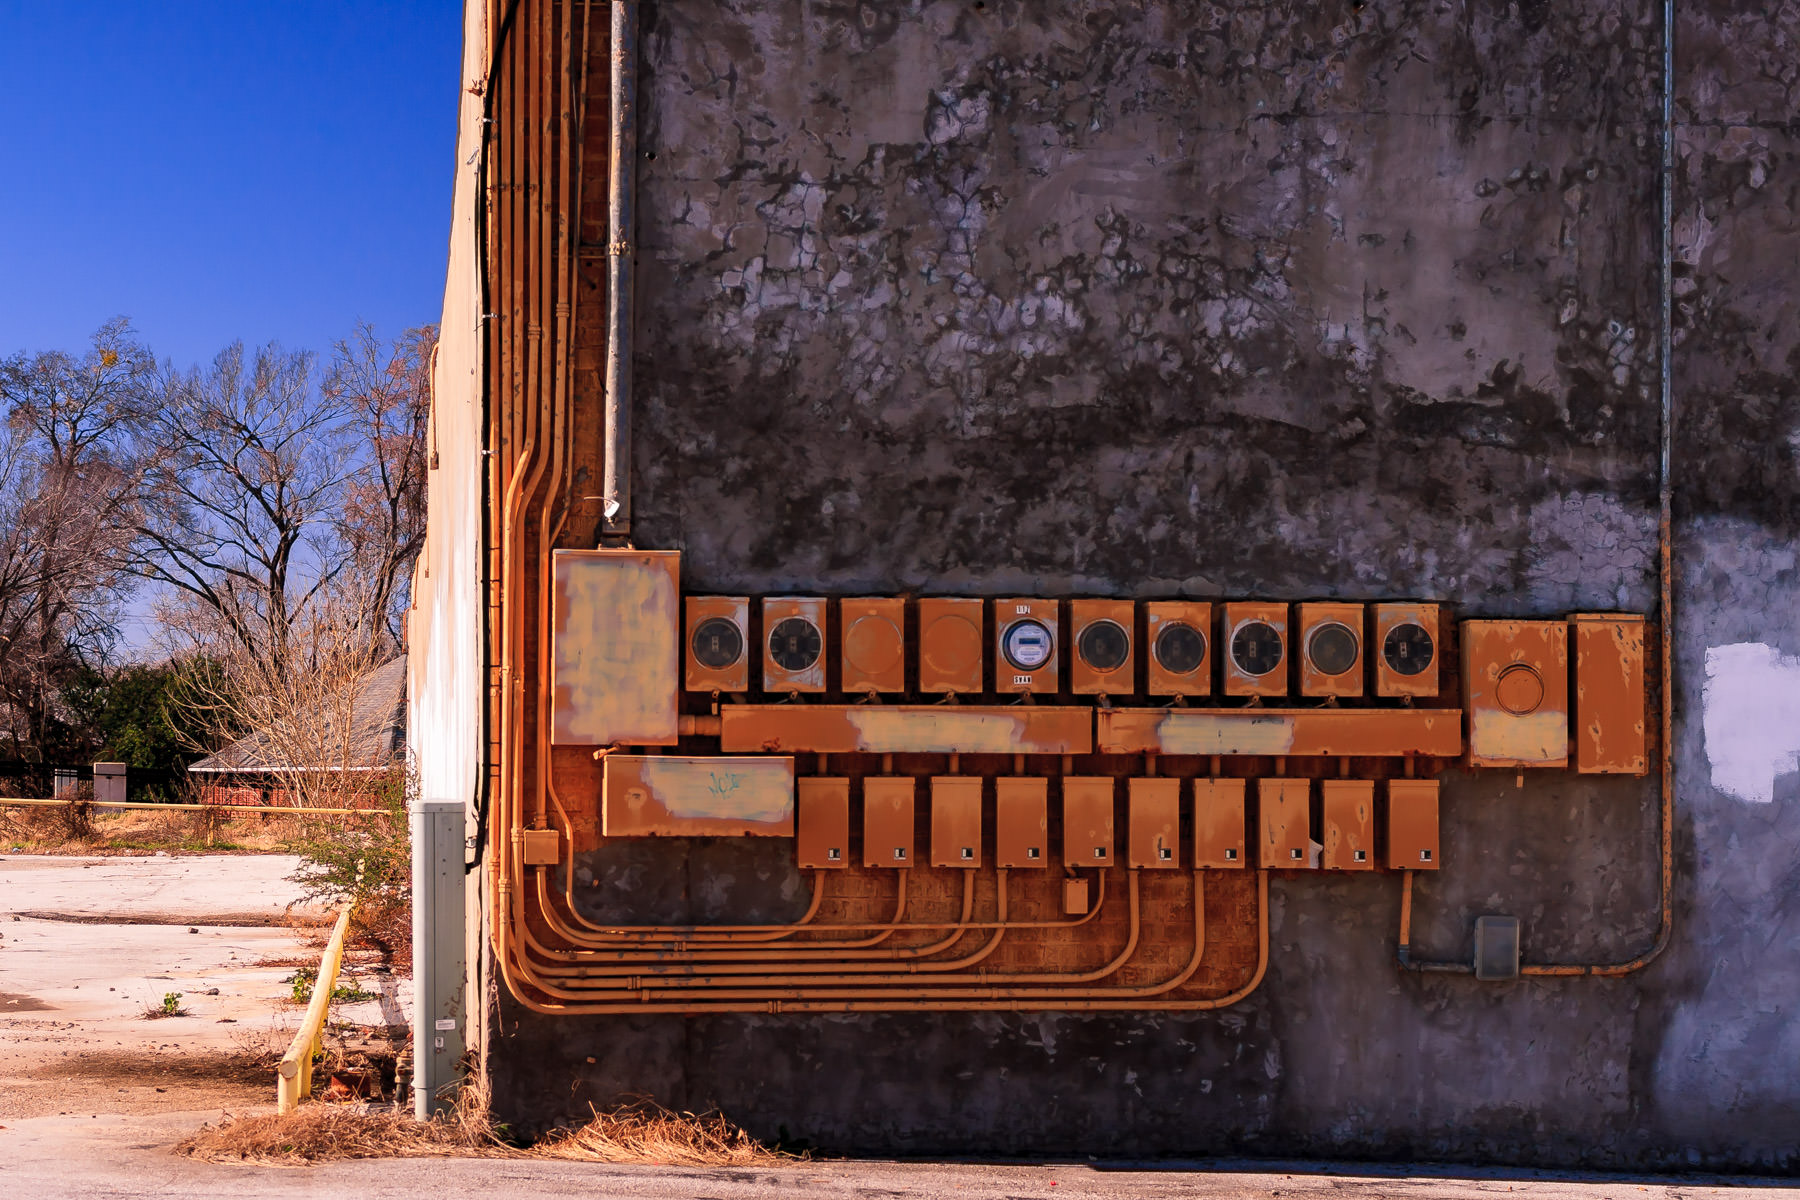 Electric meters decay on the side of an abandoned building in Tyler, Texas.